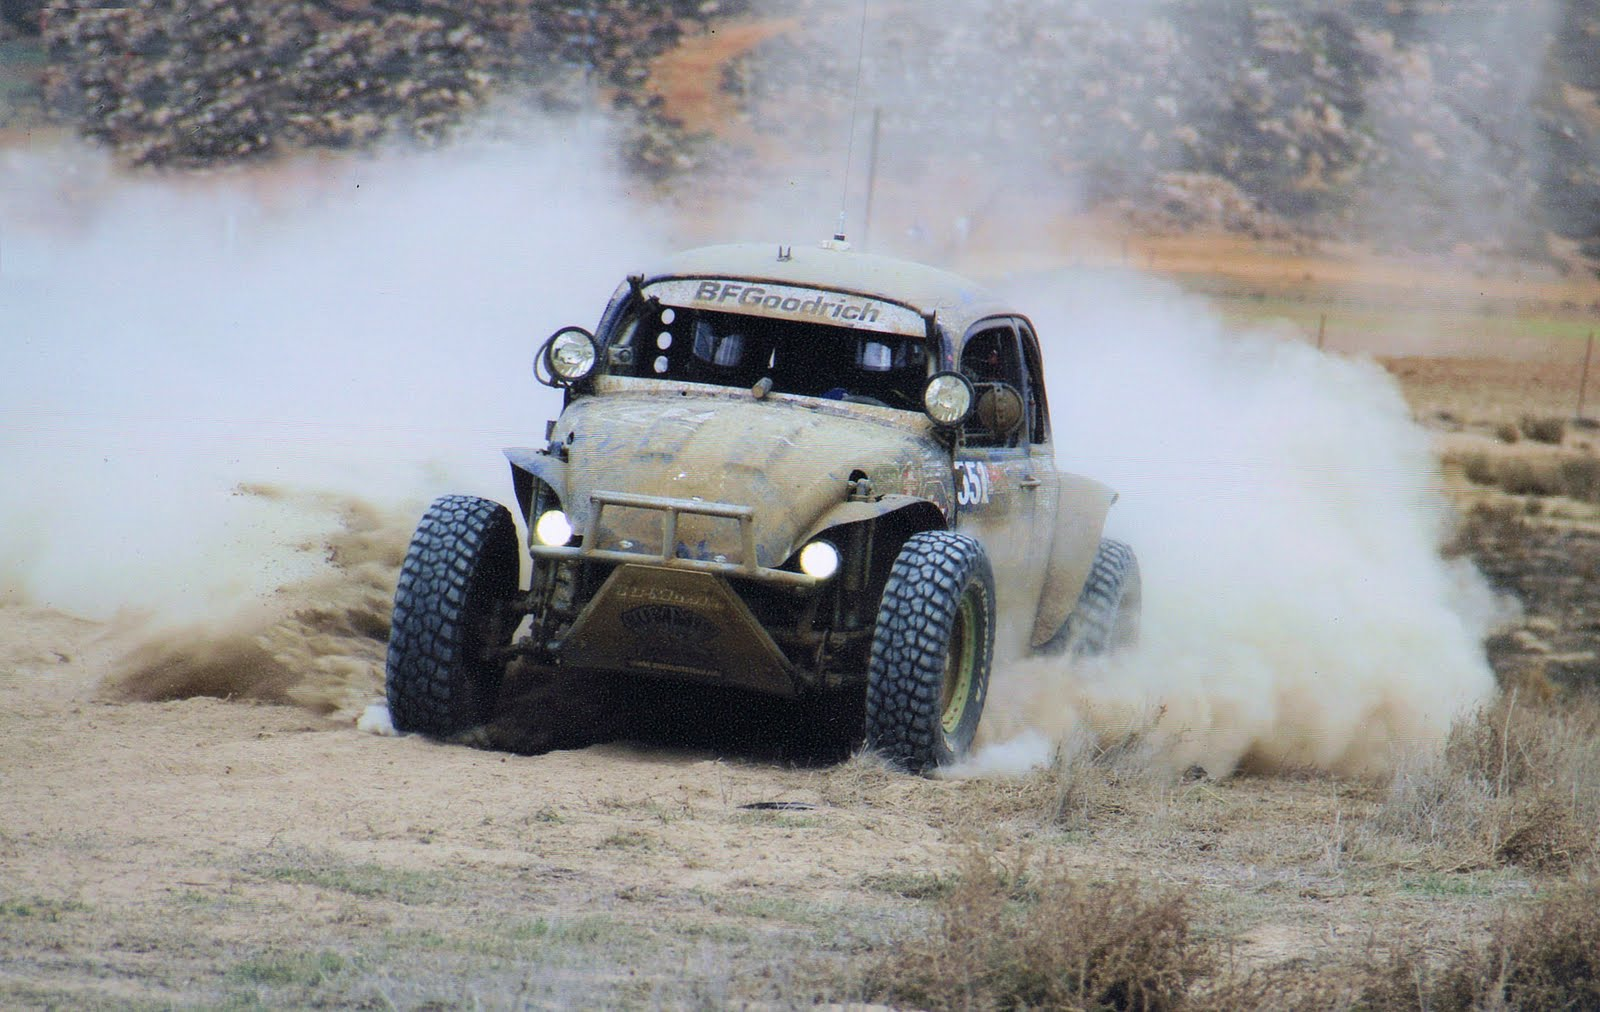 So who do you think was faster at the Baja 500? - 551004